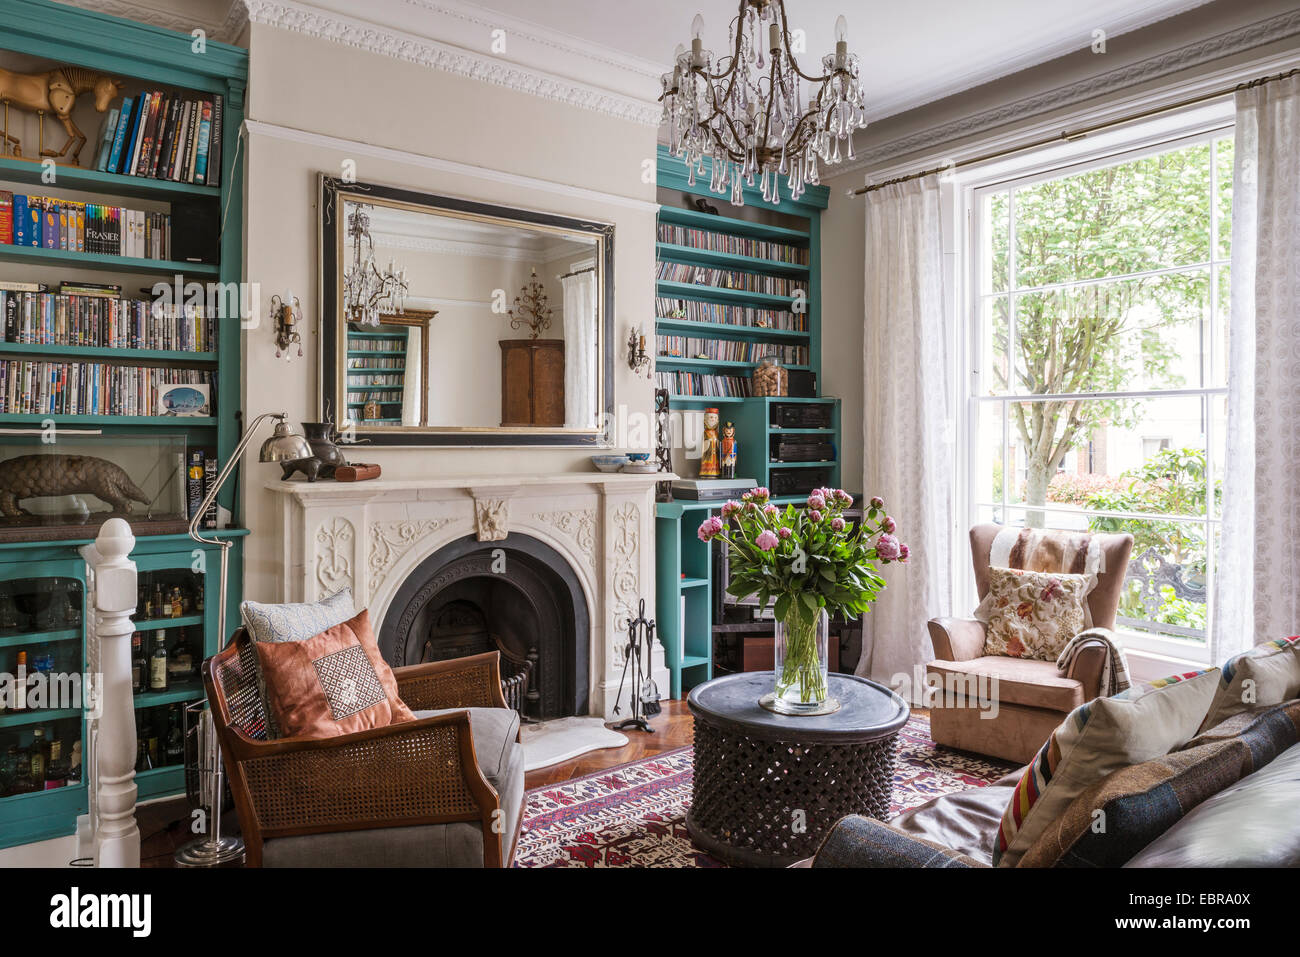 Turquoise Shelving In Elegant Living Room With Marble Fireplace And Stock Photo Royalty Free